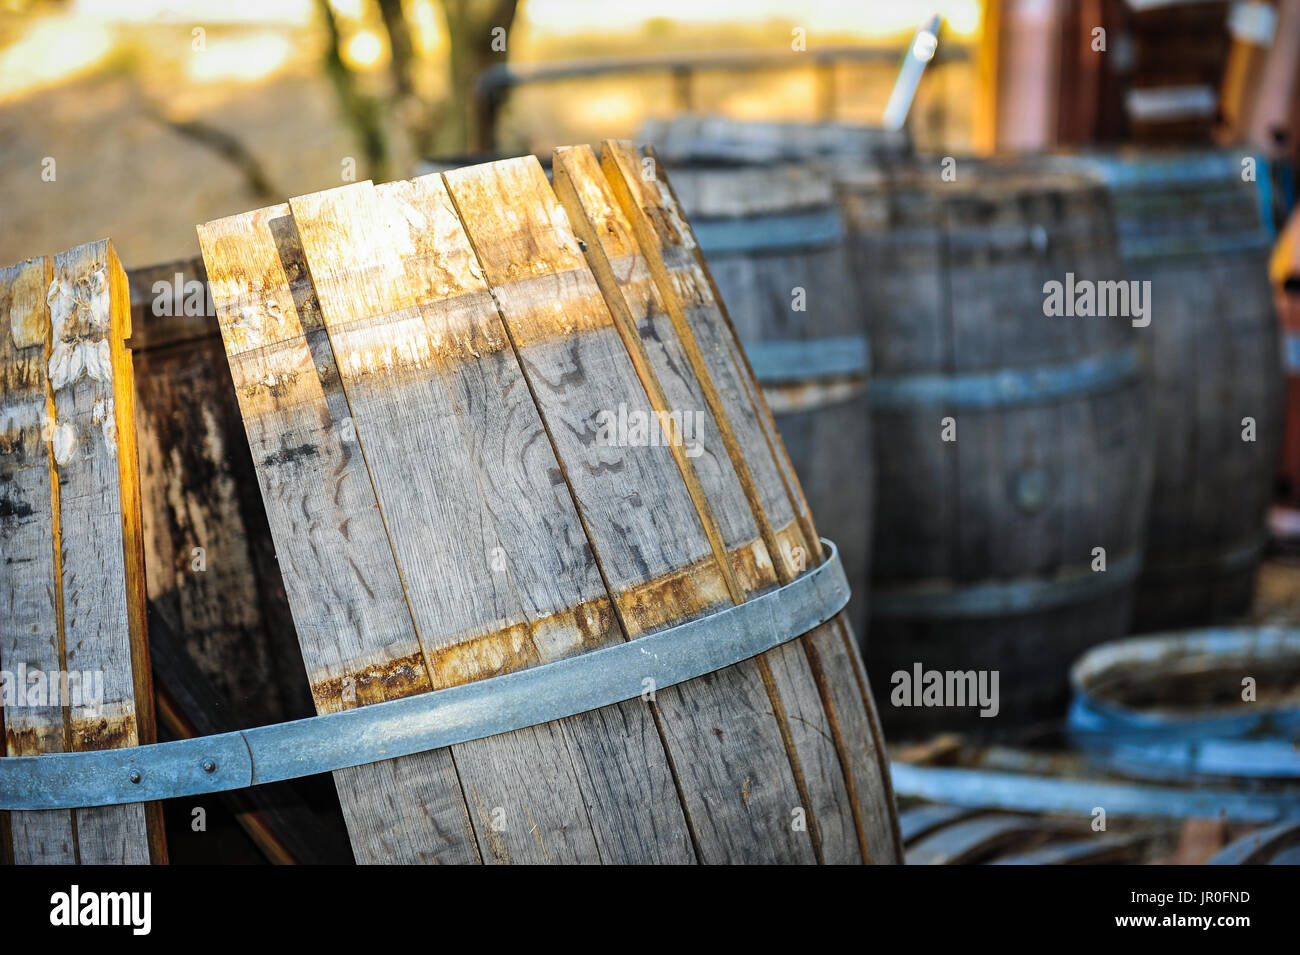 Calistoga Ranch Resort, Calistoga, CA Oct. 1, 2010.  No longer used for aging and storing wine, these barrels age by a pond on the Calistoga Resort. - Stock Image